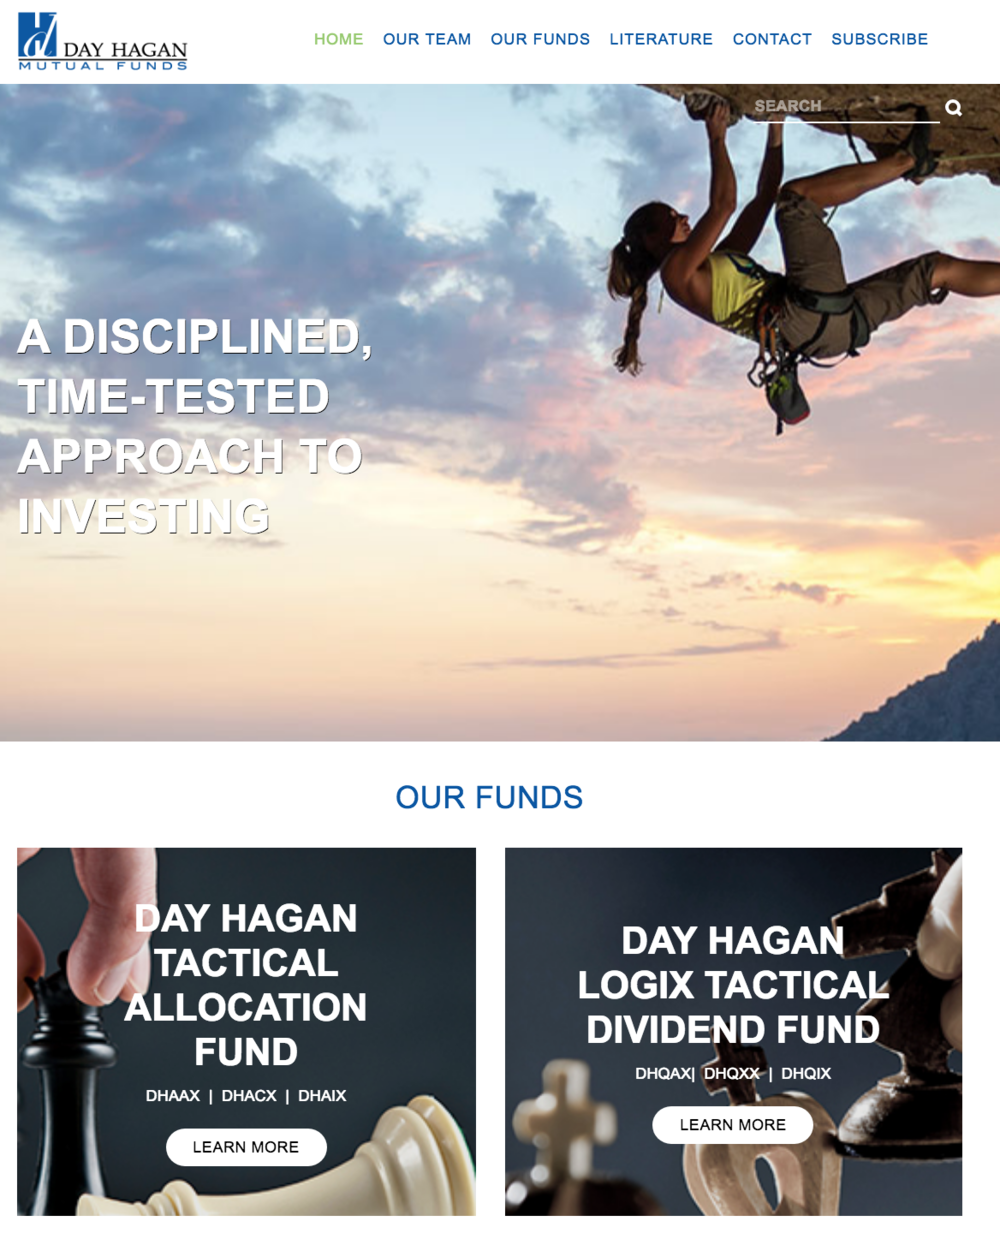 dhfunds-web-home-page.png